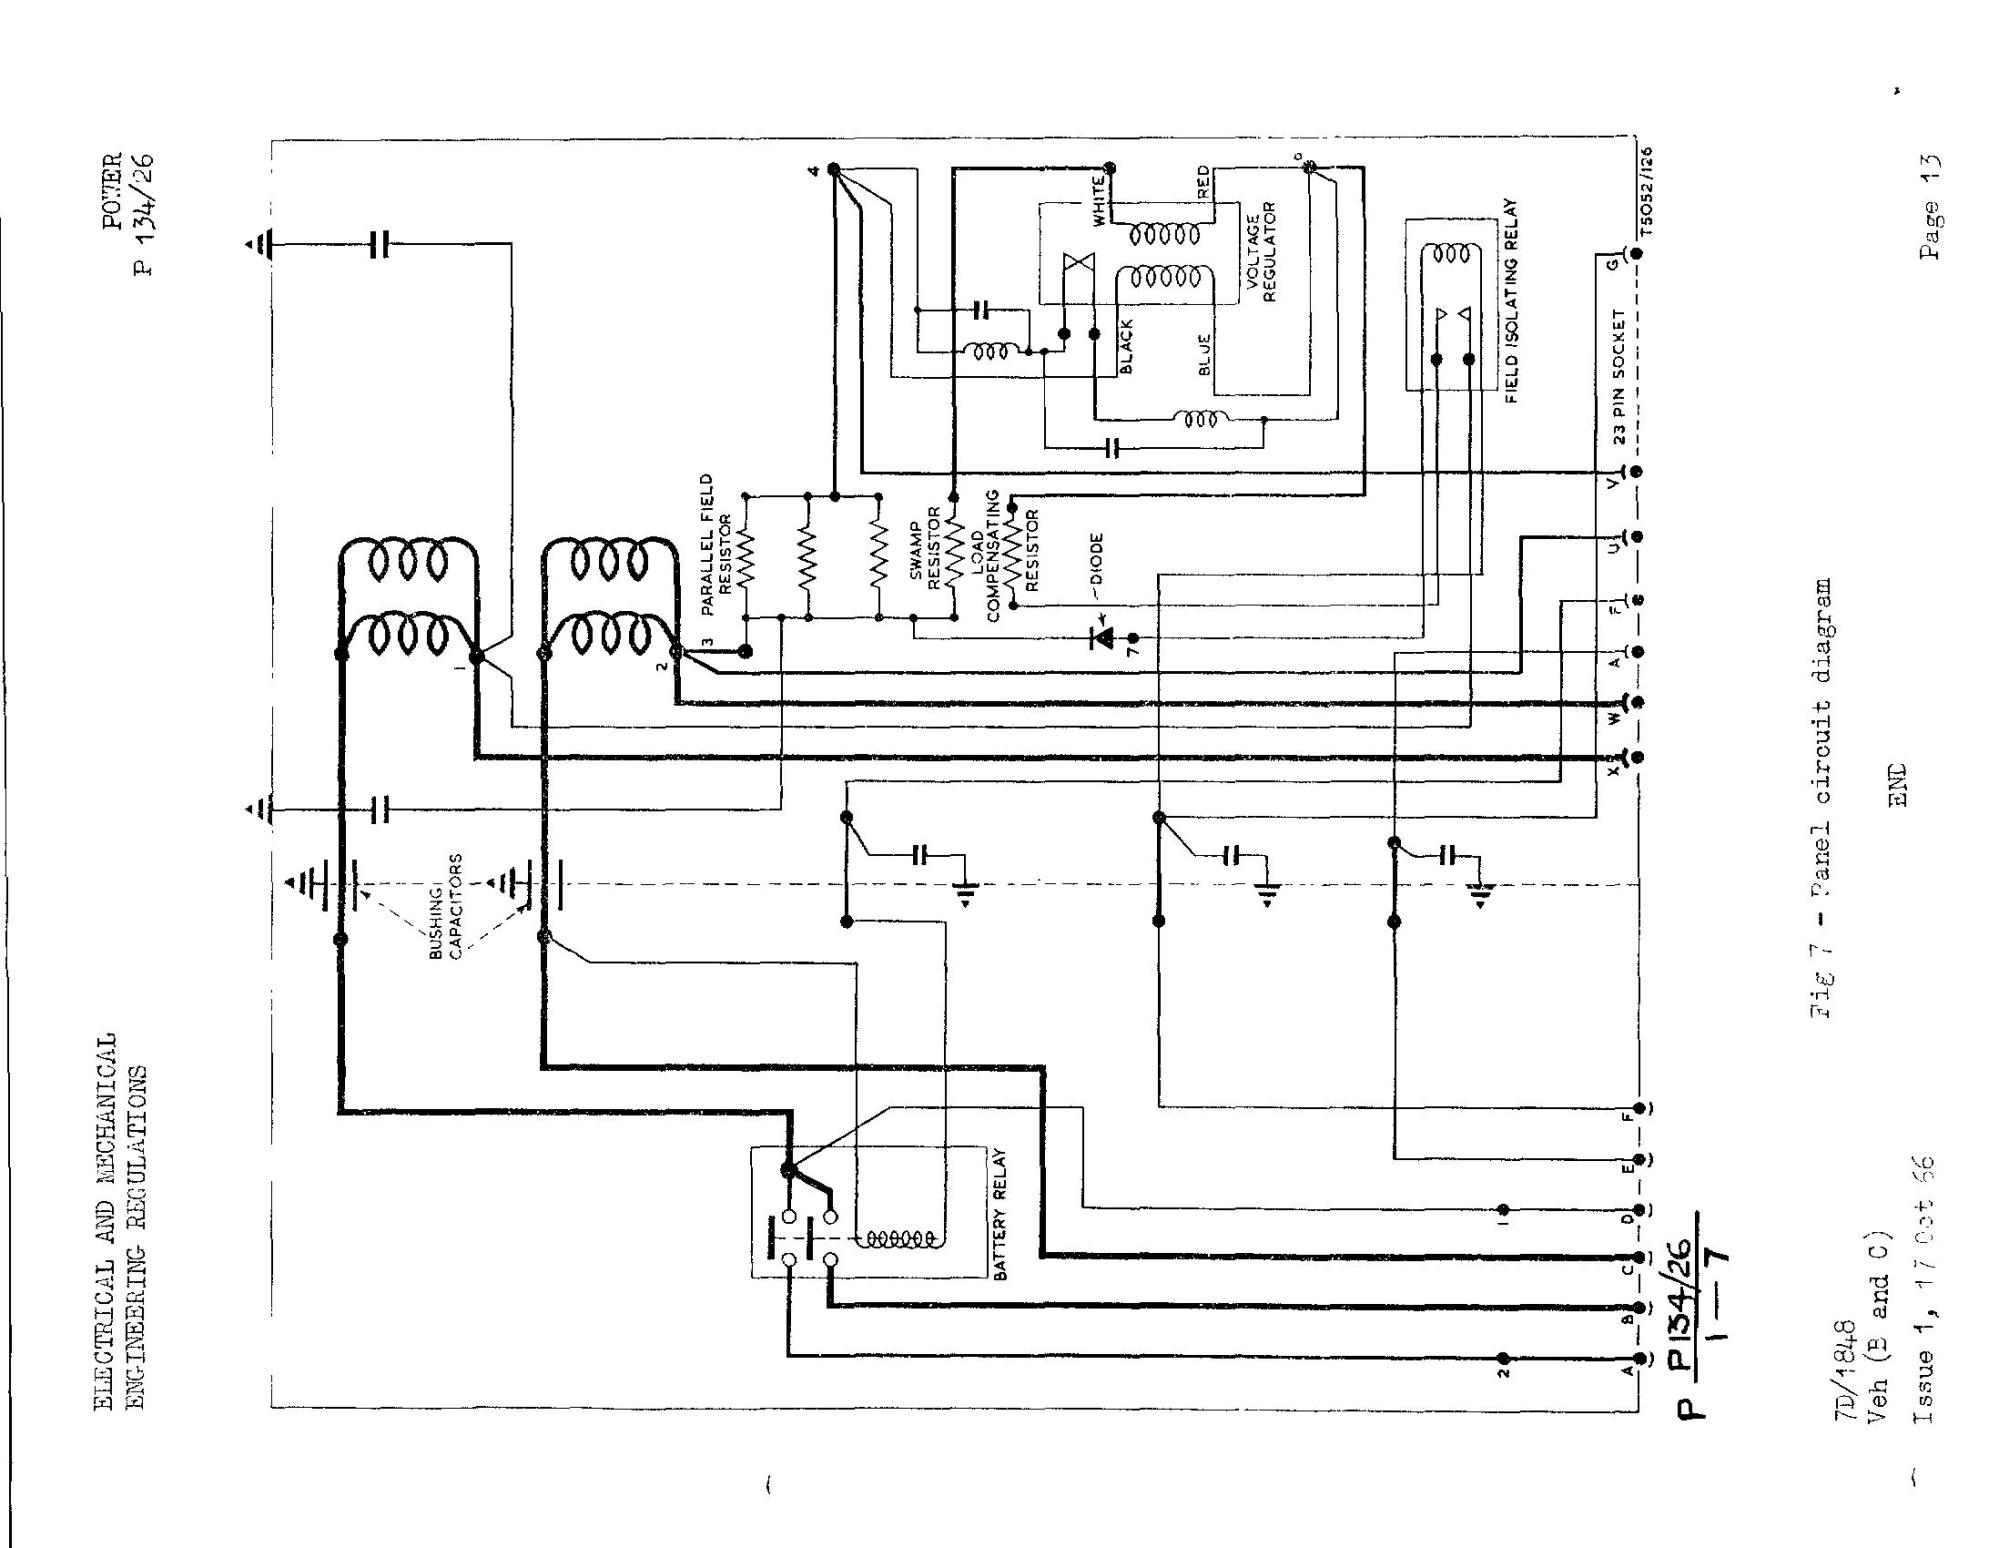 hight resolution of 98 dodge trailer wiring diagram